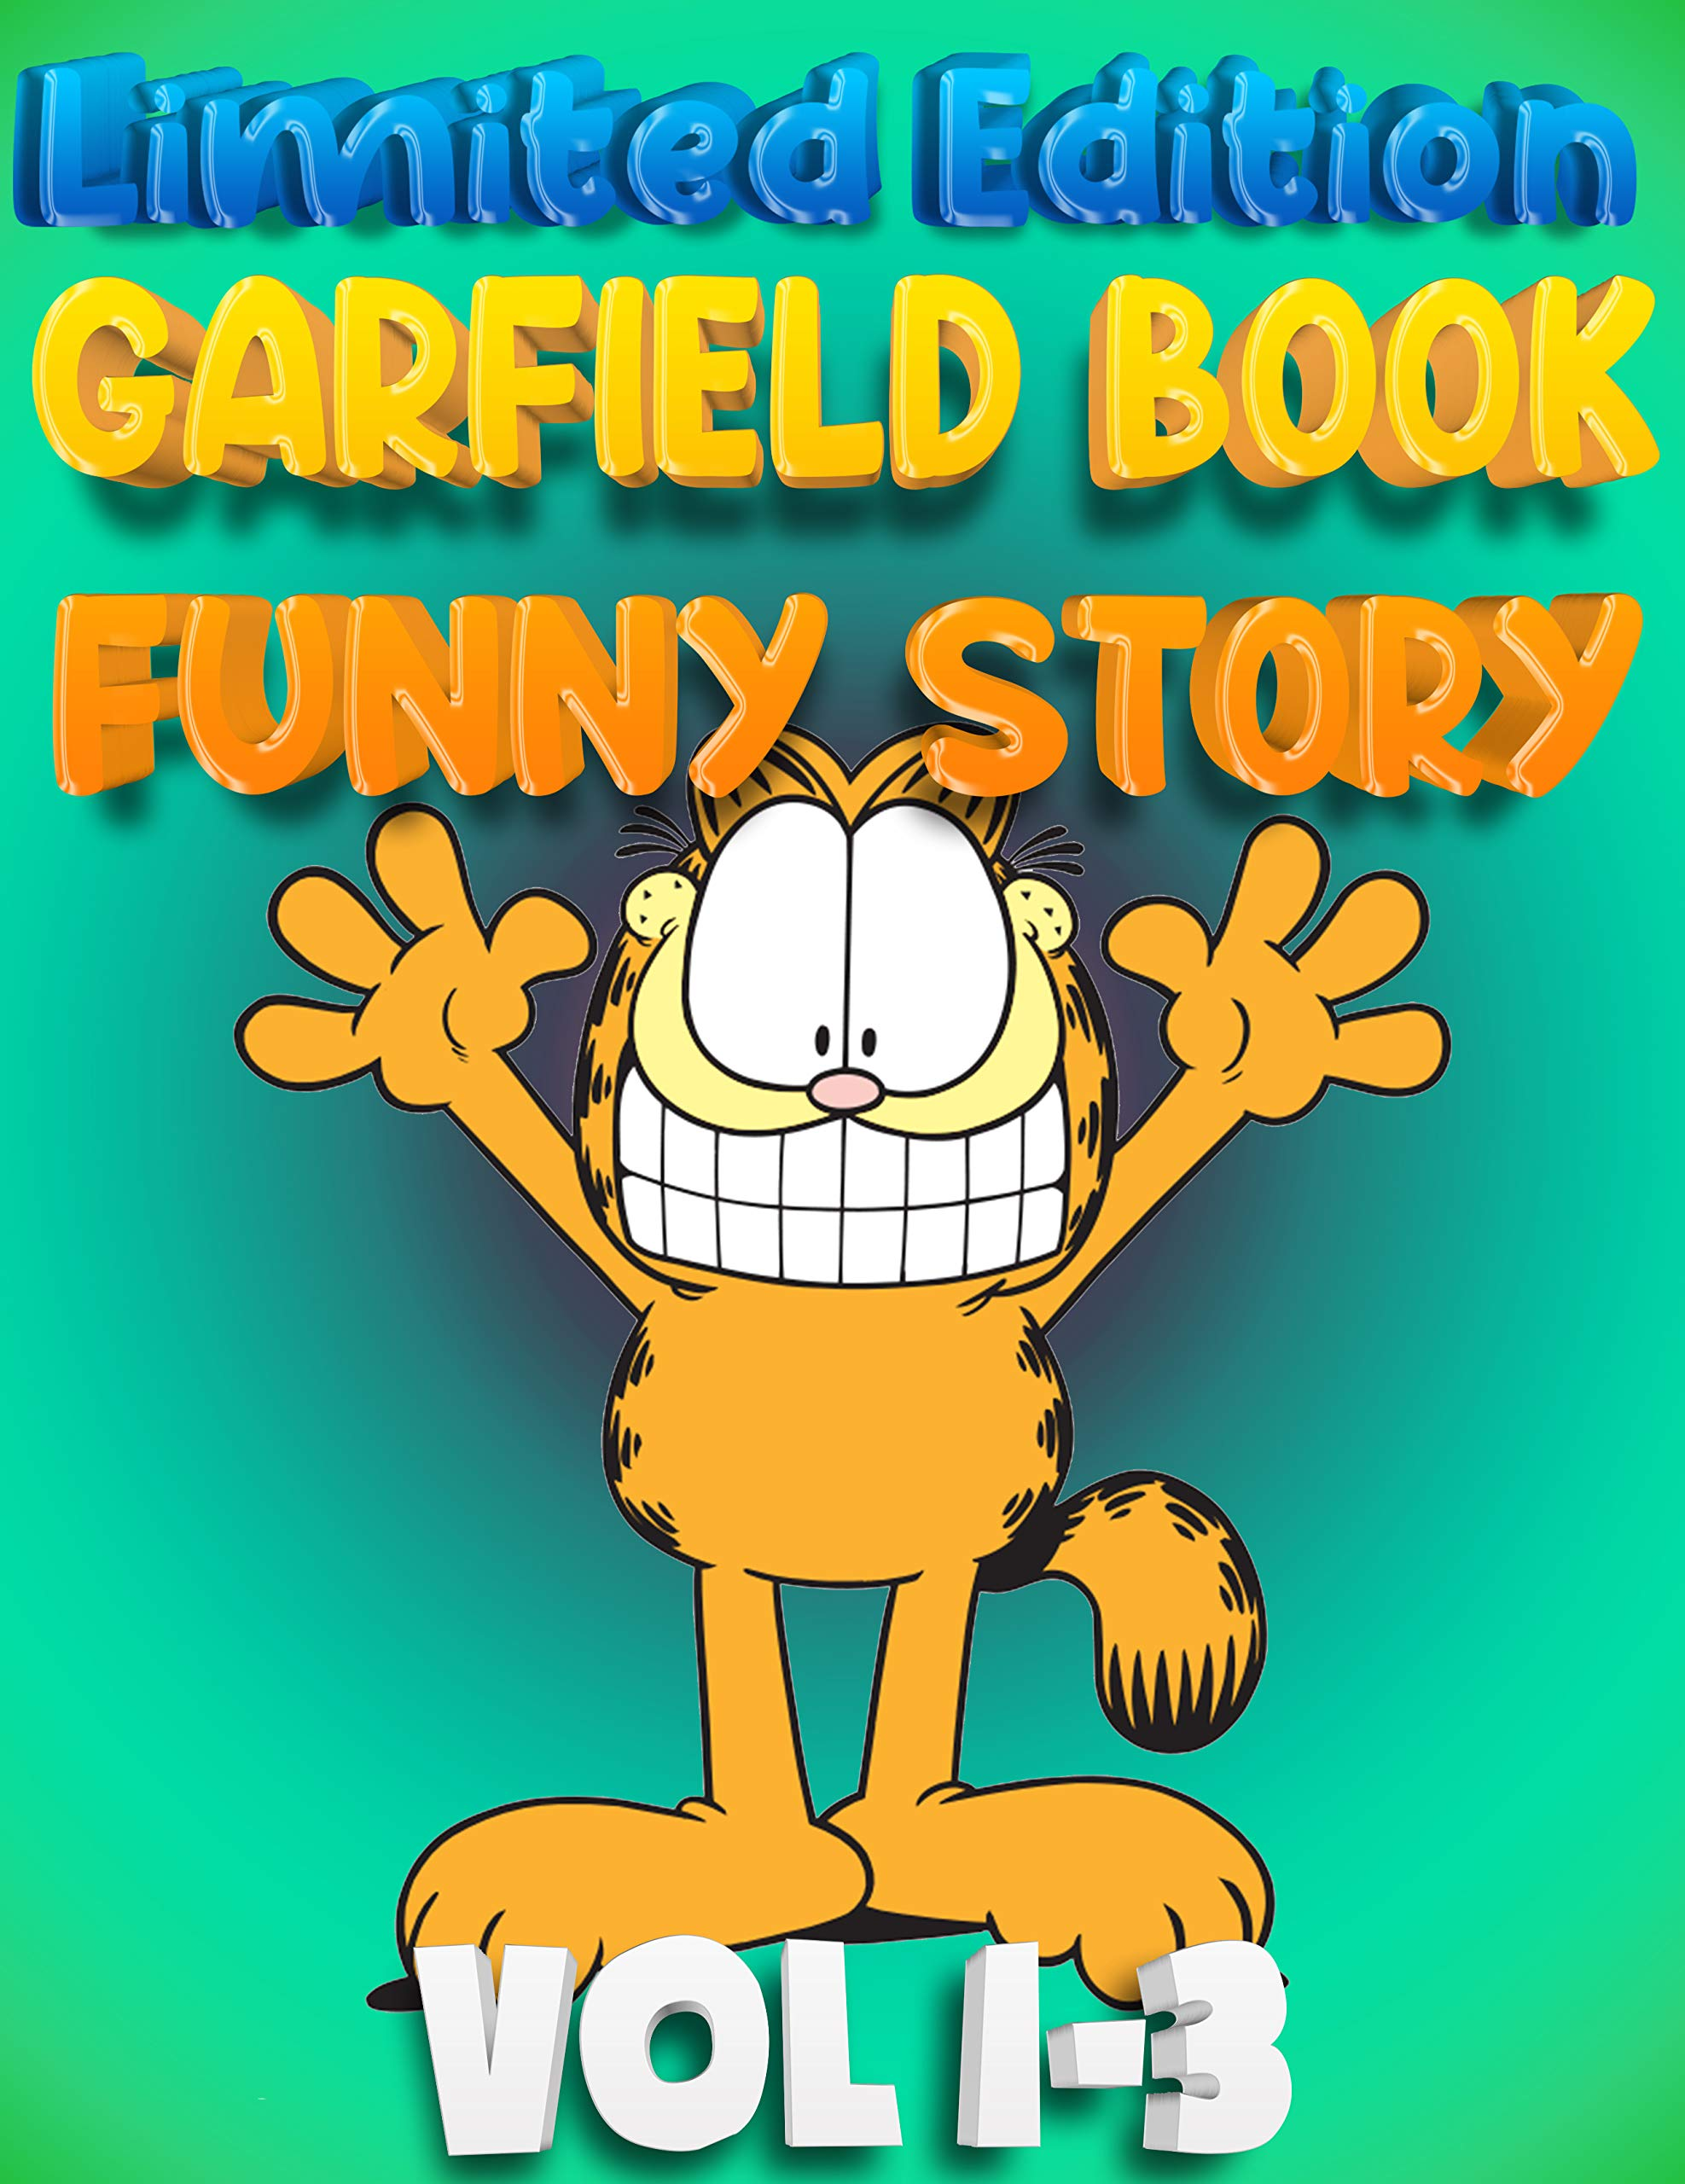 The Best Childrens Books Garfield Full Color Edition Full Series: Complete Edition Vol 1-3